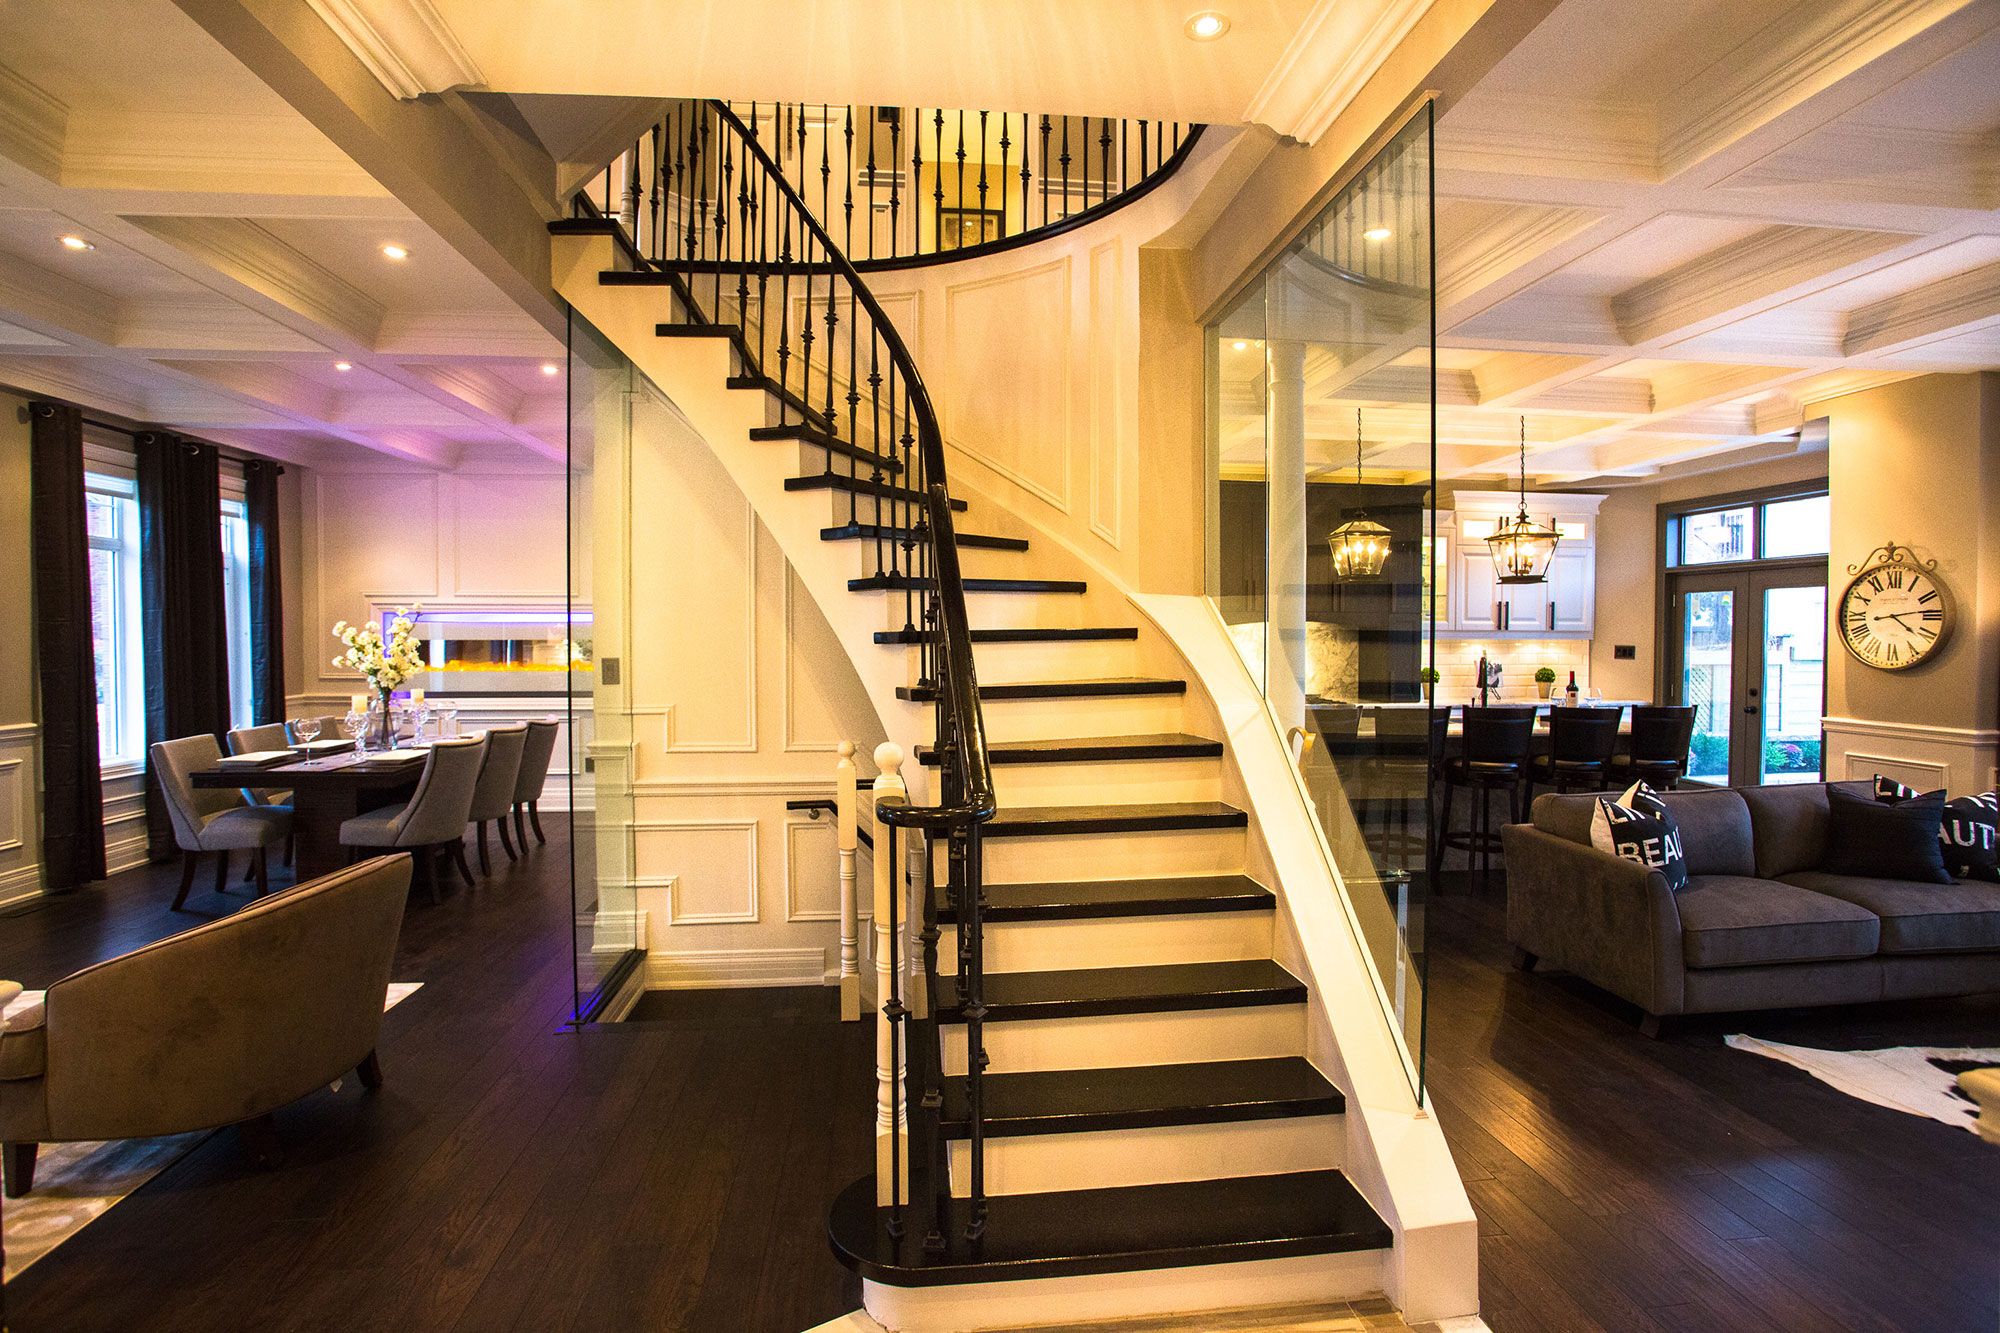 Welcome To Our Renovations Blog!